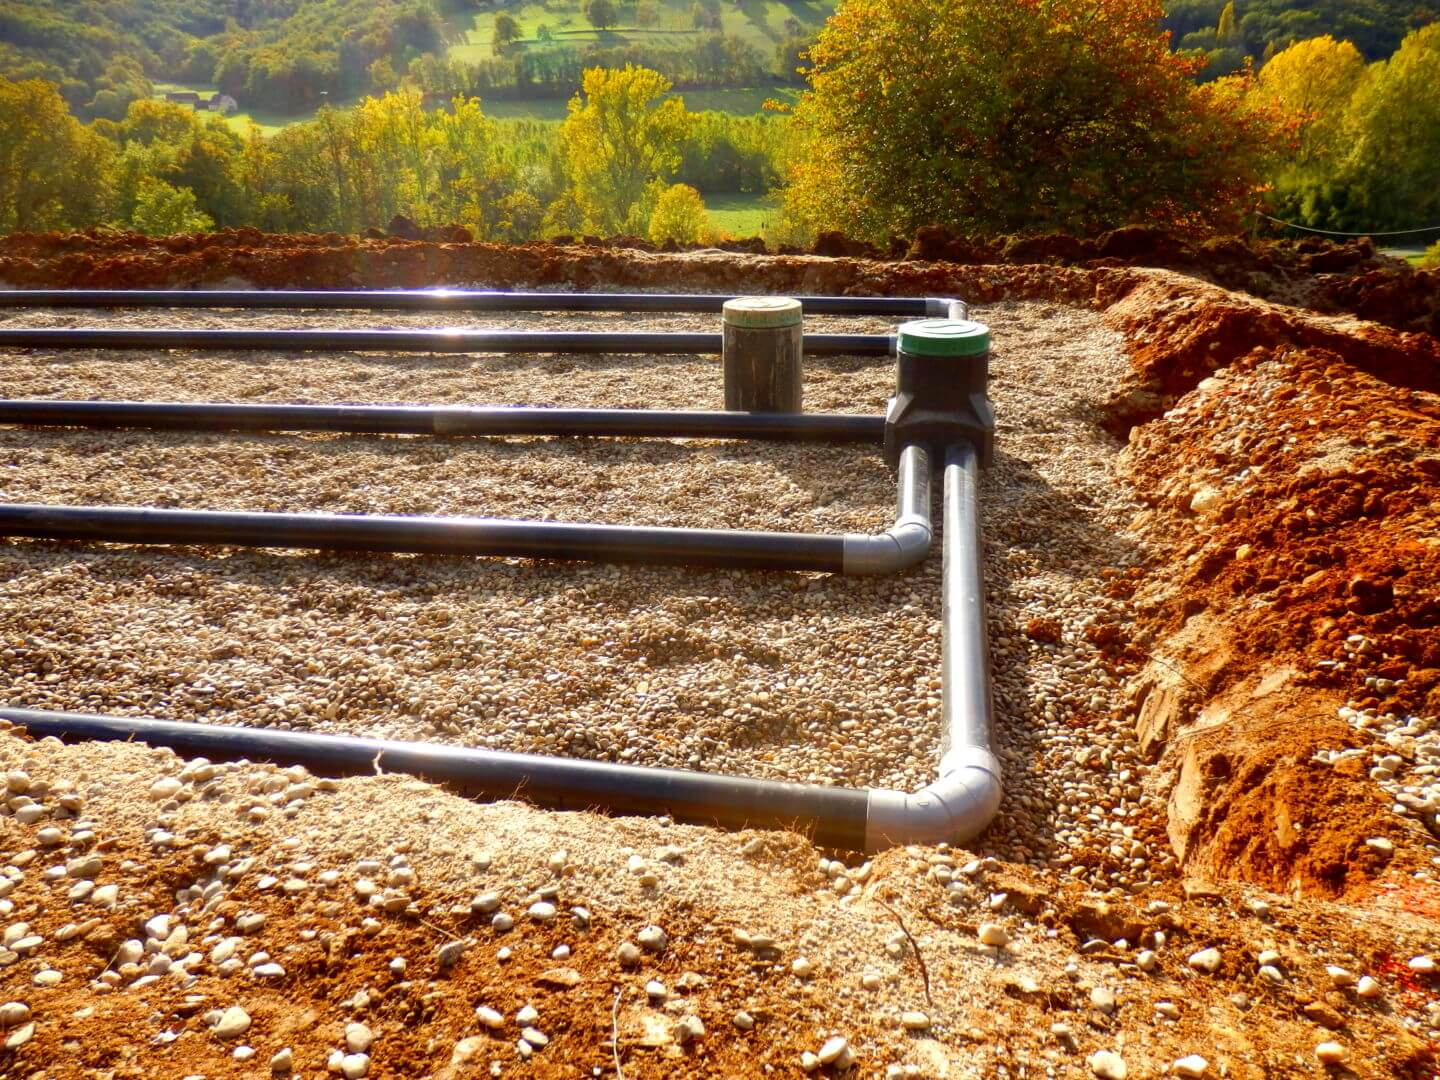 Municipal and Community Septic Systems-Garland TX Septic Tank Pumping, Installation, & Repairs-We offer Septic Service & Repairs, Septic Tank Installations, Septic Tank Cleaning, Commercial, Septic System, Drain Cleaning, Line Snaking, Portable Toilet, Grease Trap Pumping & Cleaning, Septic Tank Pumping, Sewage Pump, Sewer Line Repair, Septic Tank Replacement, Septic Maintenance, Sewer Line Replacement, Porta Potty Rentals, and more.